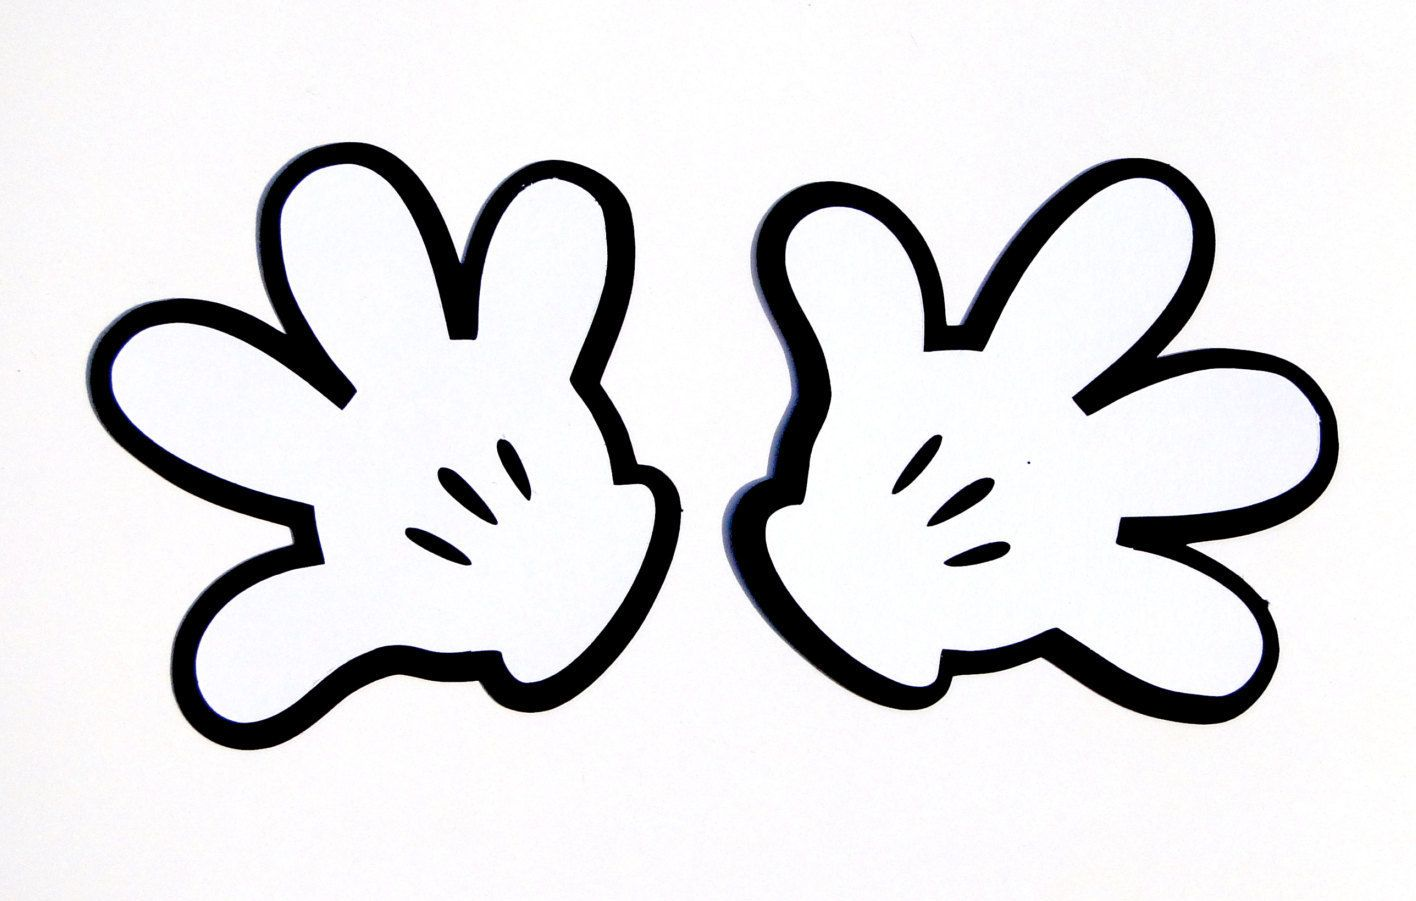 photograph about Mickey Mouse Hands Printable identified as minnie mouse arms - Google Glance minnie mouse.gmk